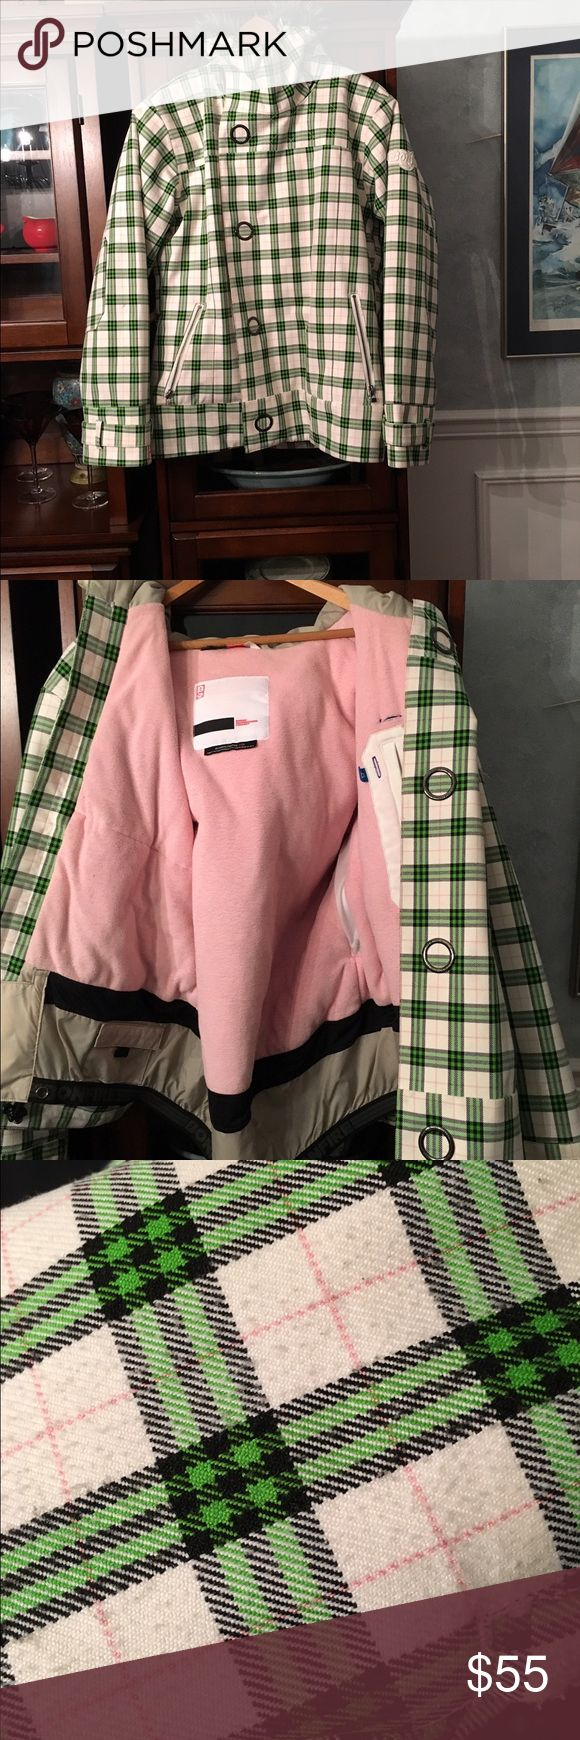 Bonfire snowboarding jacket Bonfire snowboarding jacket. Pink and green gingham details. Faux fur around the hood. Pink fleece inside with powder skirt. Zippered pockets on the outside and one inside. Some pilling on the inside of the arms. Size large Jackets & Coats